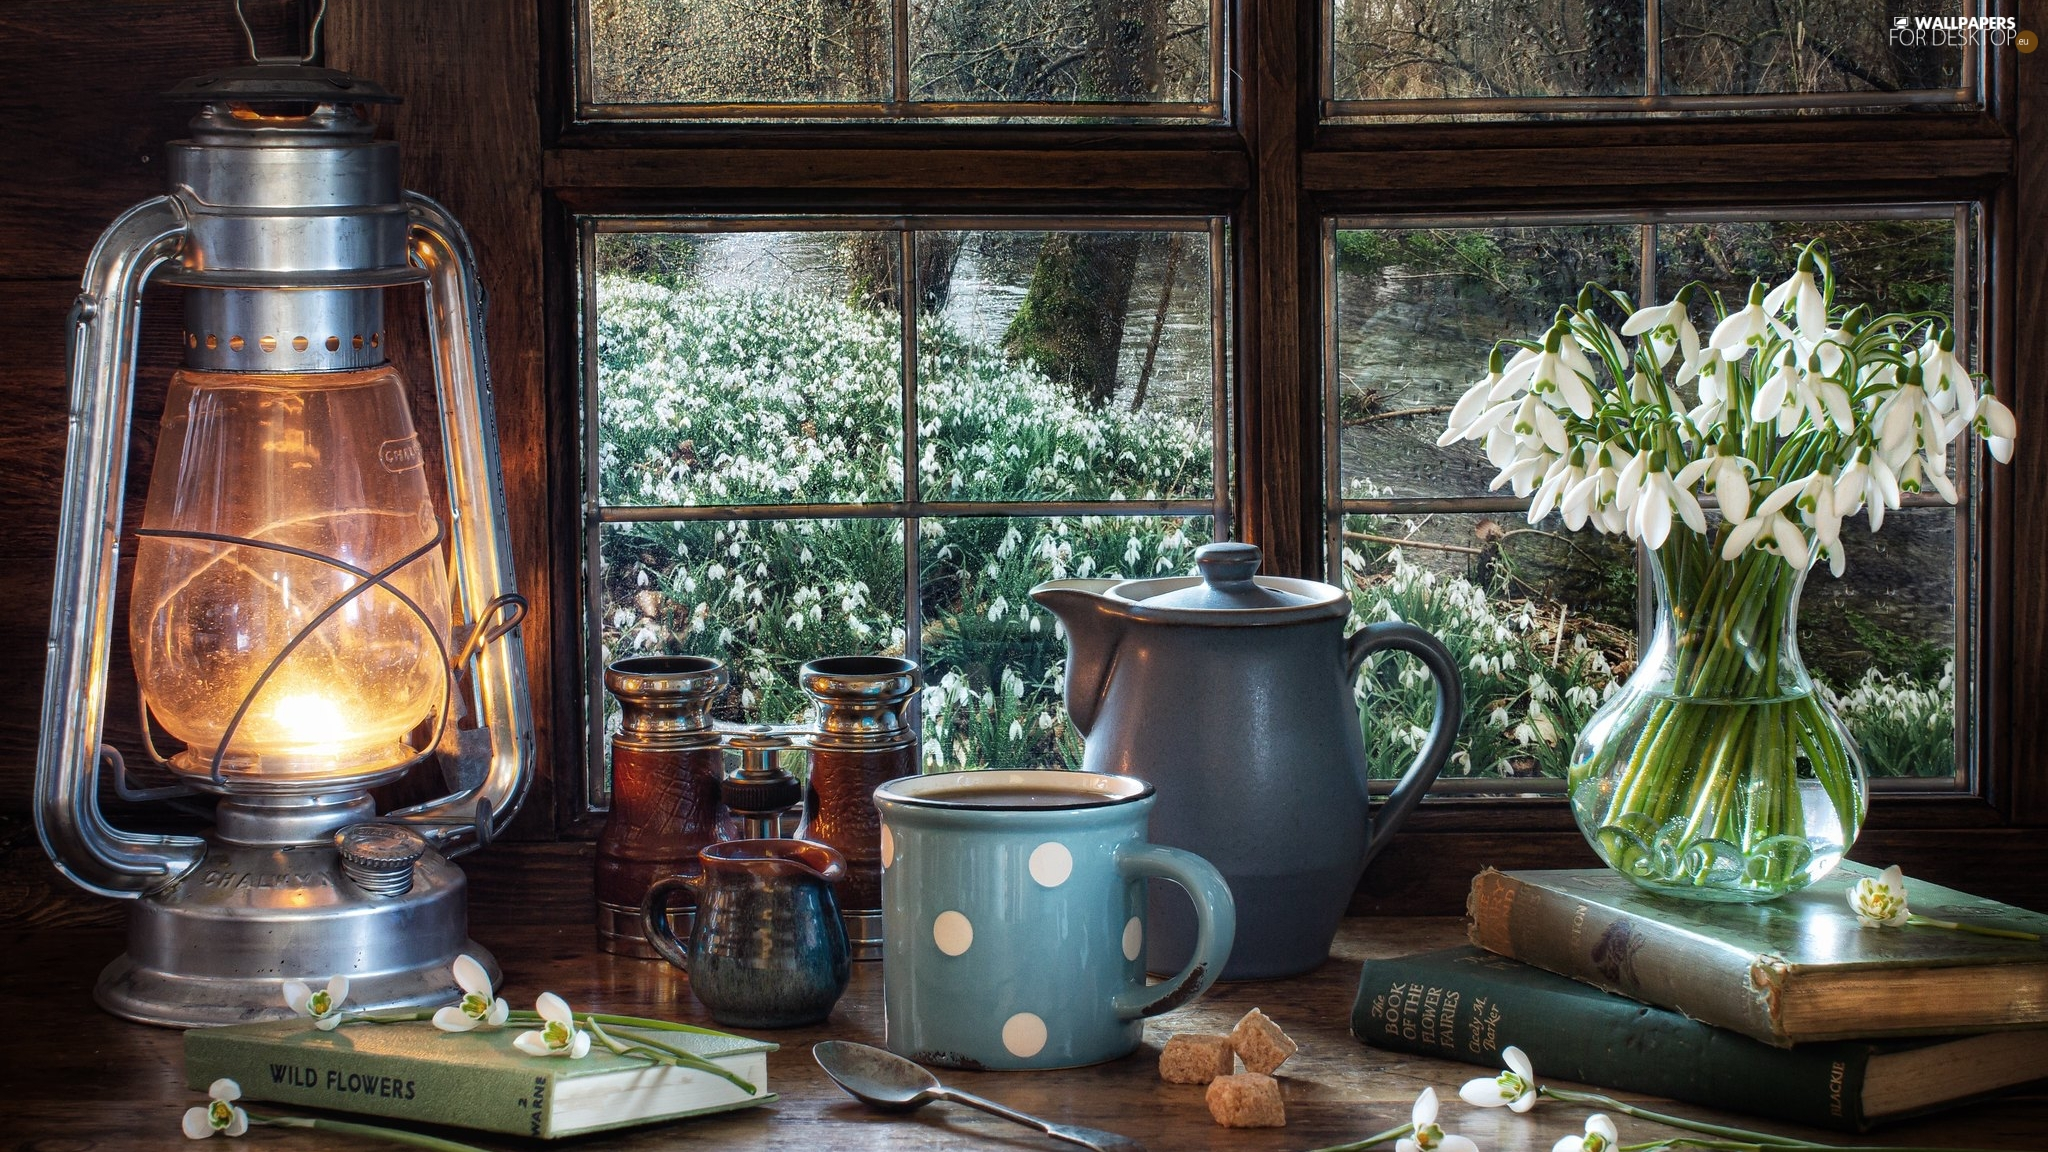 Window, snowdrops, binoculars, Cup, jug, Lamp, composition, Book